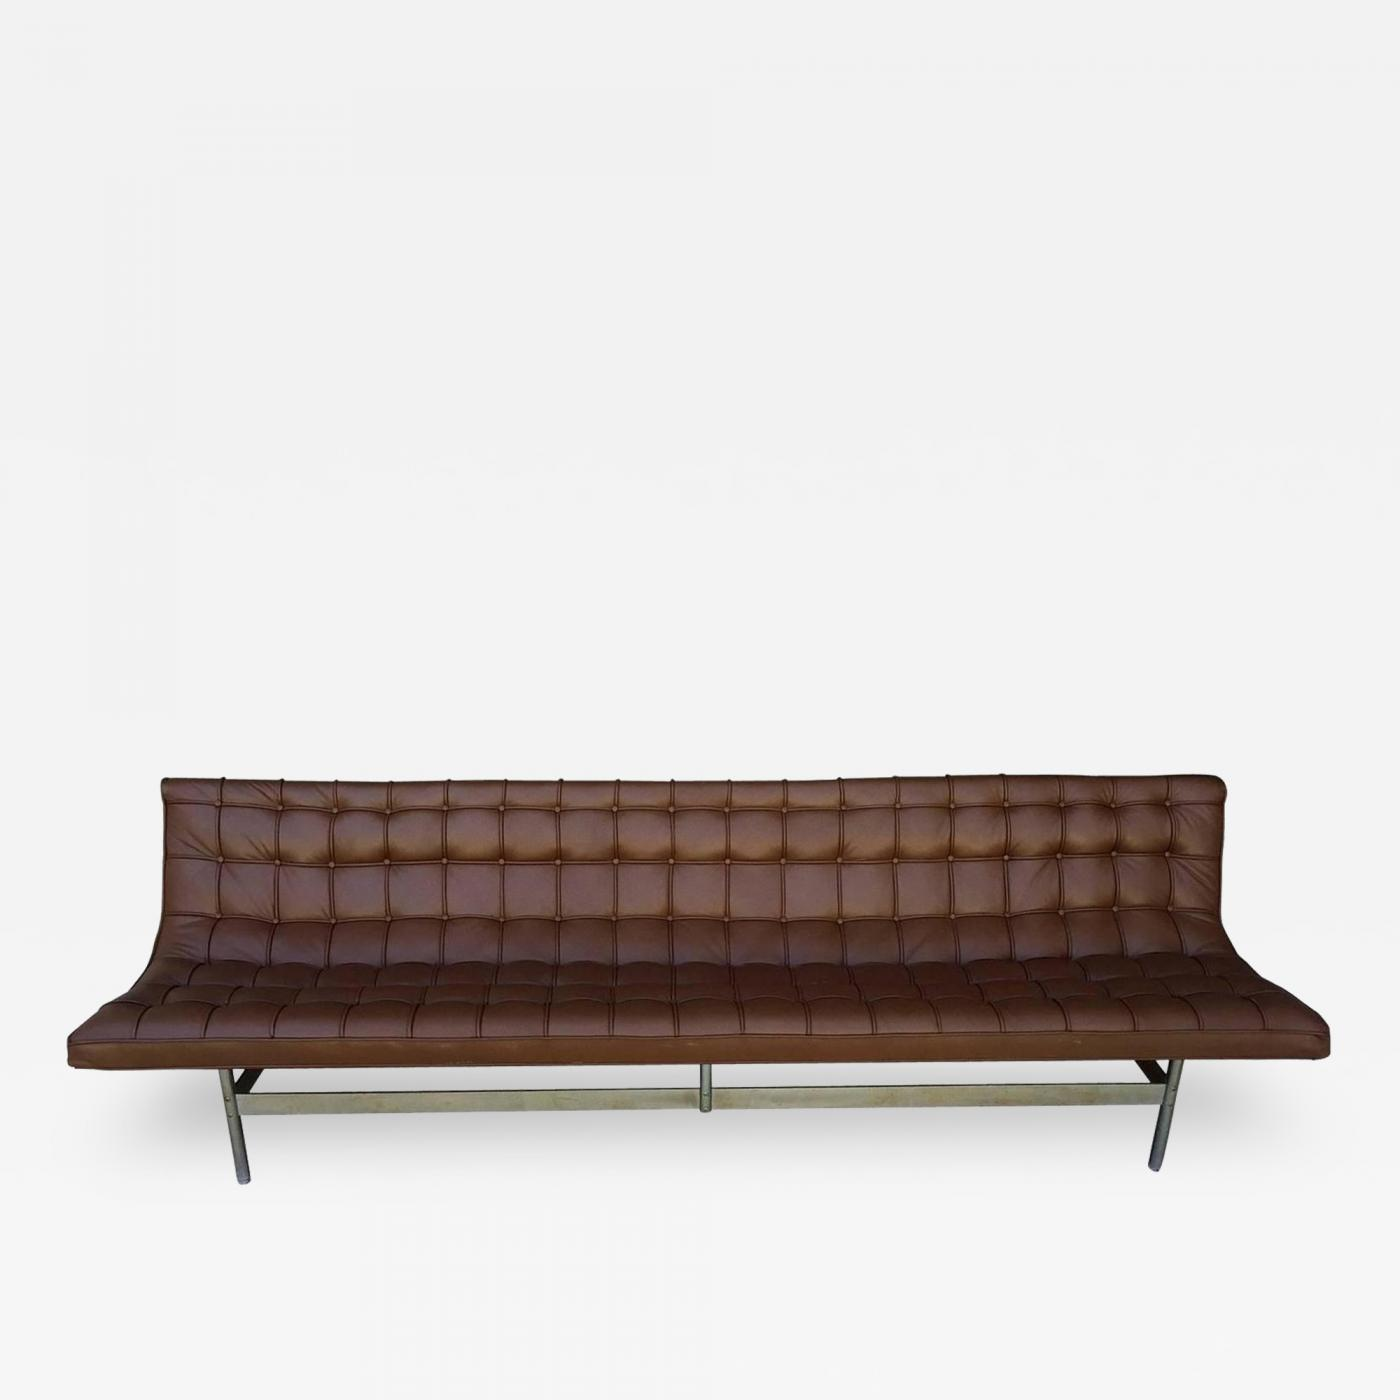 Marvelous Katavolos Littel Kelly New York Sofa By Katavalos Littell And Kelly For Laverne International Home Interior And Landscaping Eliaenasavecom